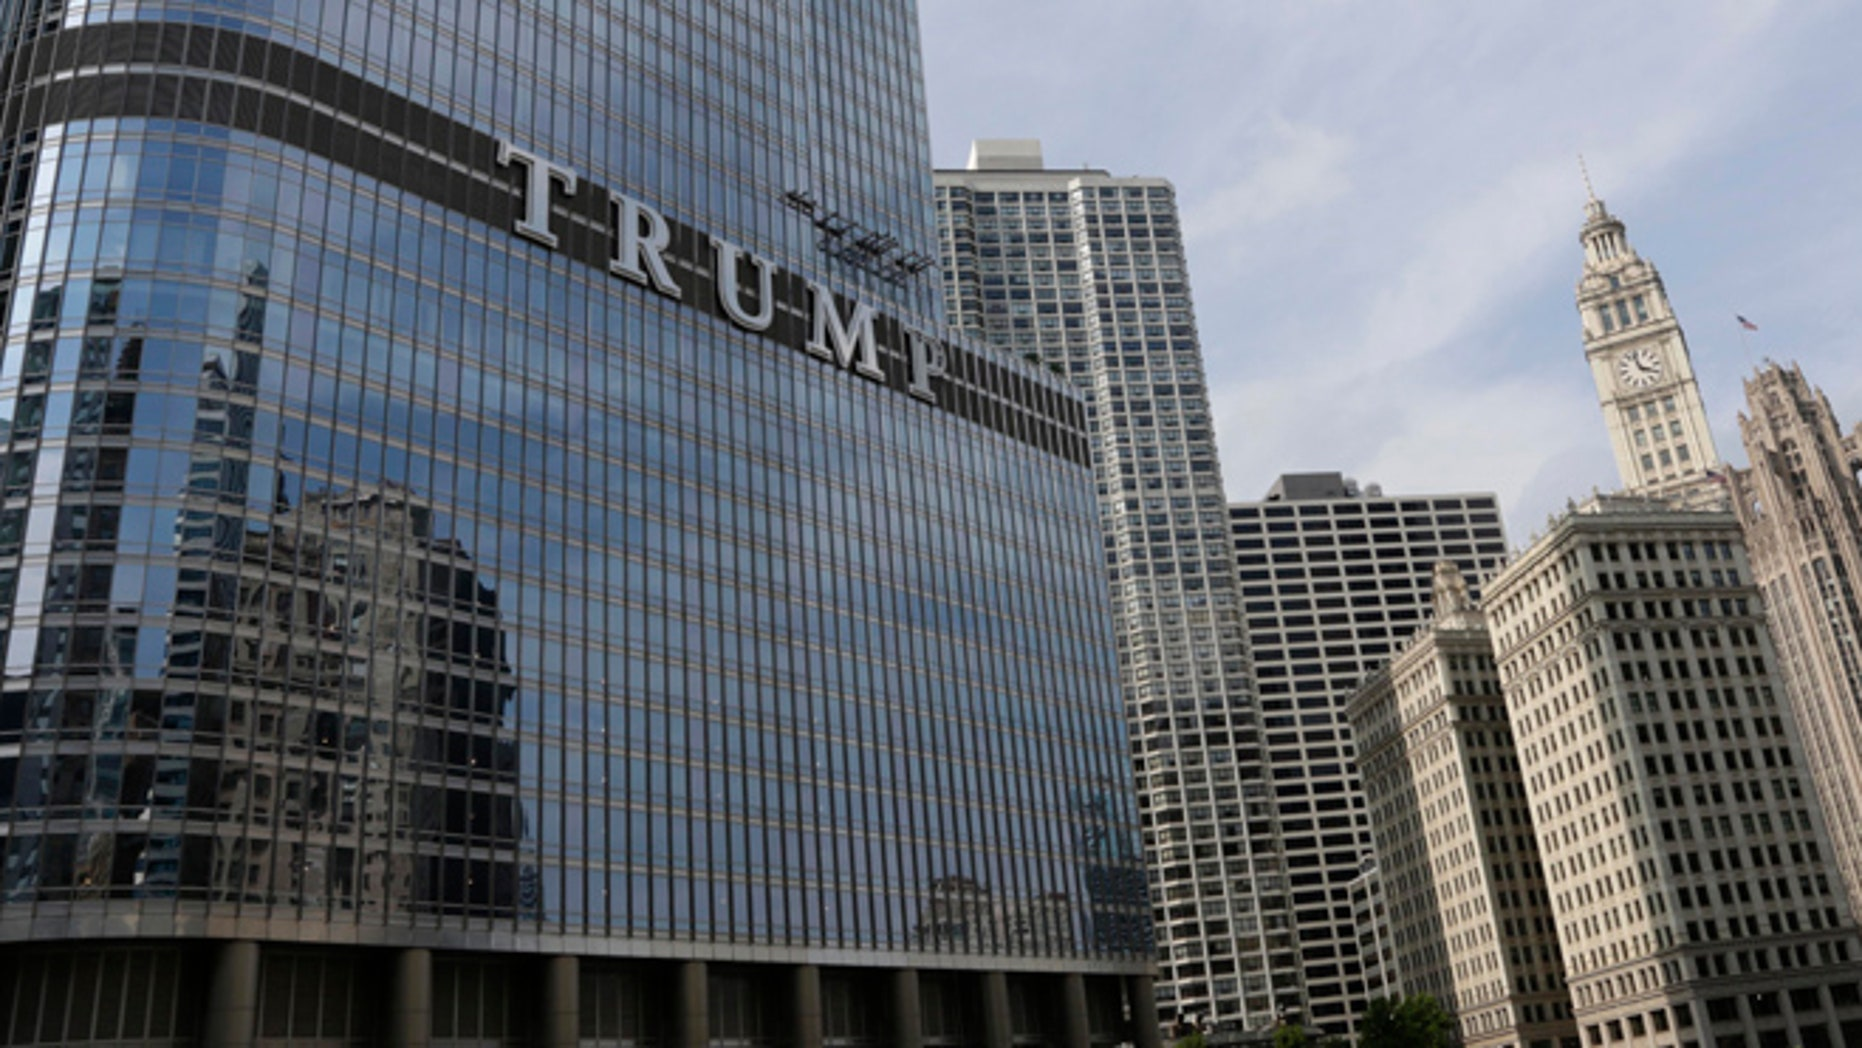 Newly installed 20-foot-tall letters spelling out T-R-U-M-P are seen on the side of real estate billionaire Donald Trump's skyscraper in Chicago, Thursday, June 12, 2014. The letters have triggered a war of words between Trump and Chicago Mayor Rahm Emanuel.(AP Photo/Stacy Thacker)